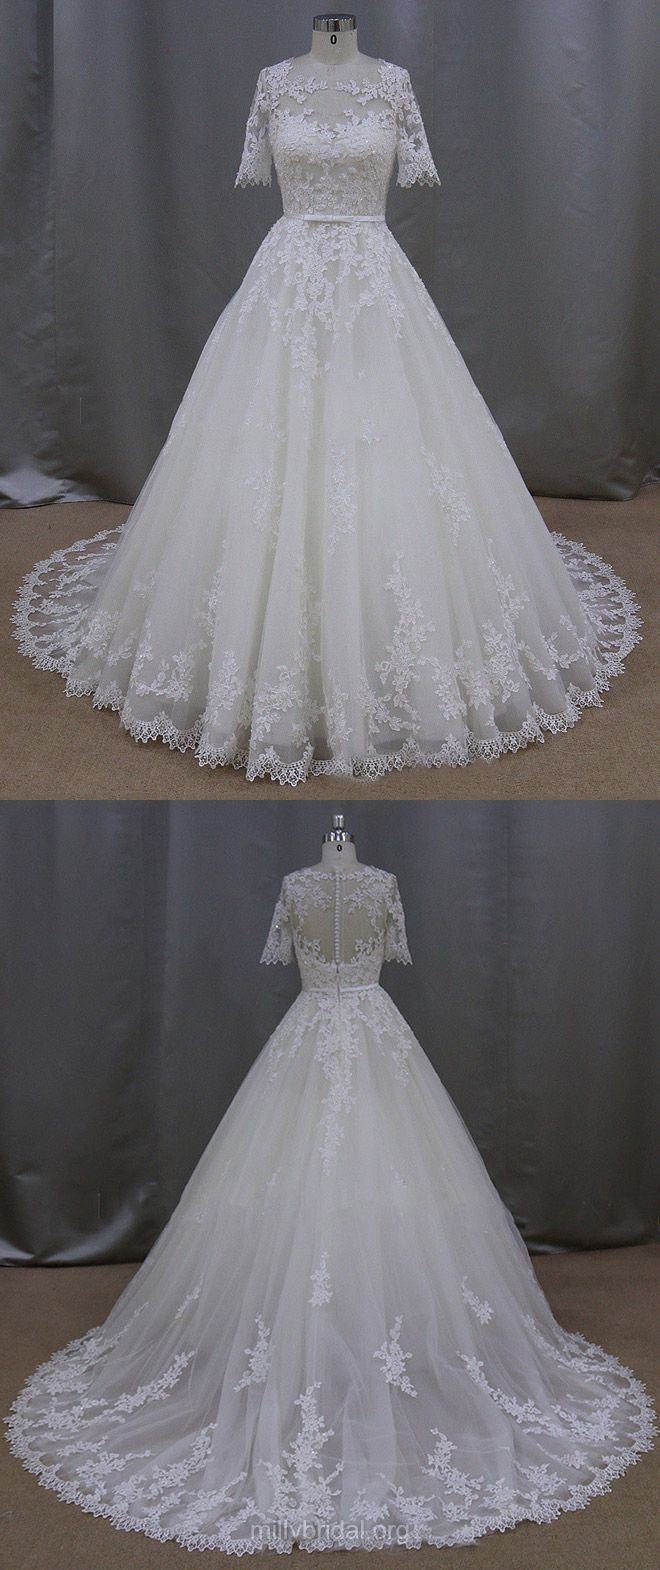 Ball Gown Wedding Dresses Lace, Country Wedding Dress Vintage, Simple Wedding Dresses Modest